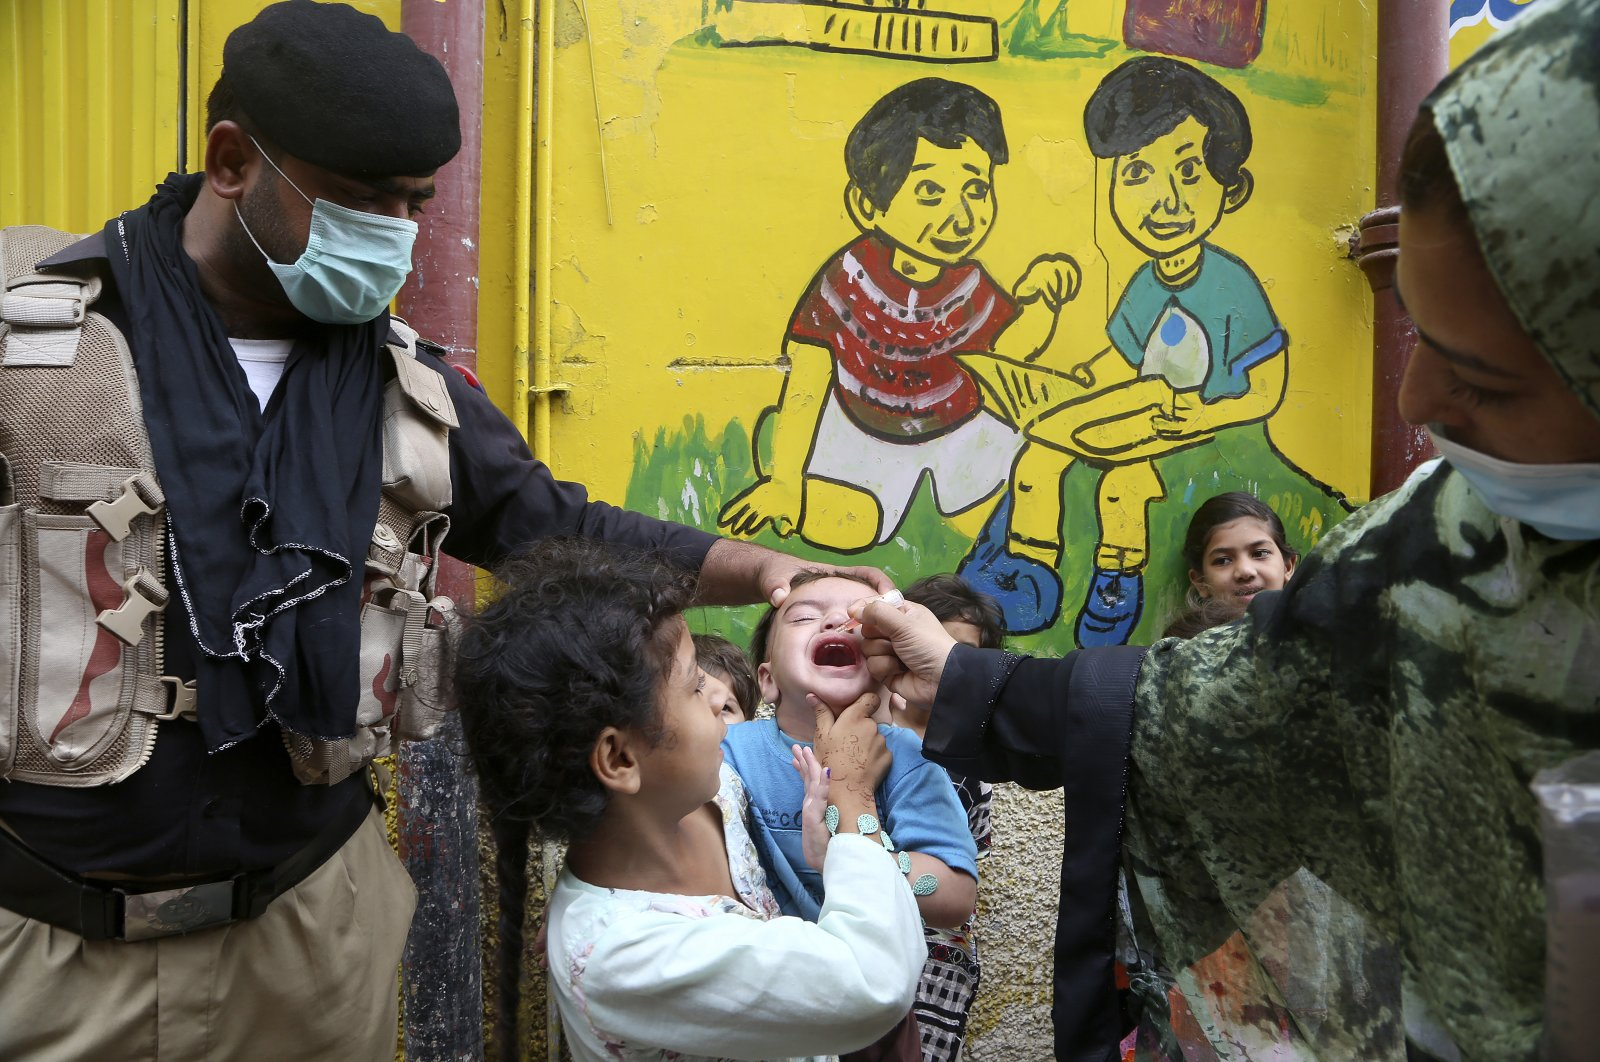 A police officer helps a health worker administer a polio vaccine to a child in Peshawar, Pakistan, on July 30, 2021. (AP Photo)